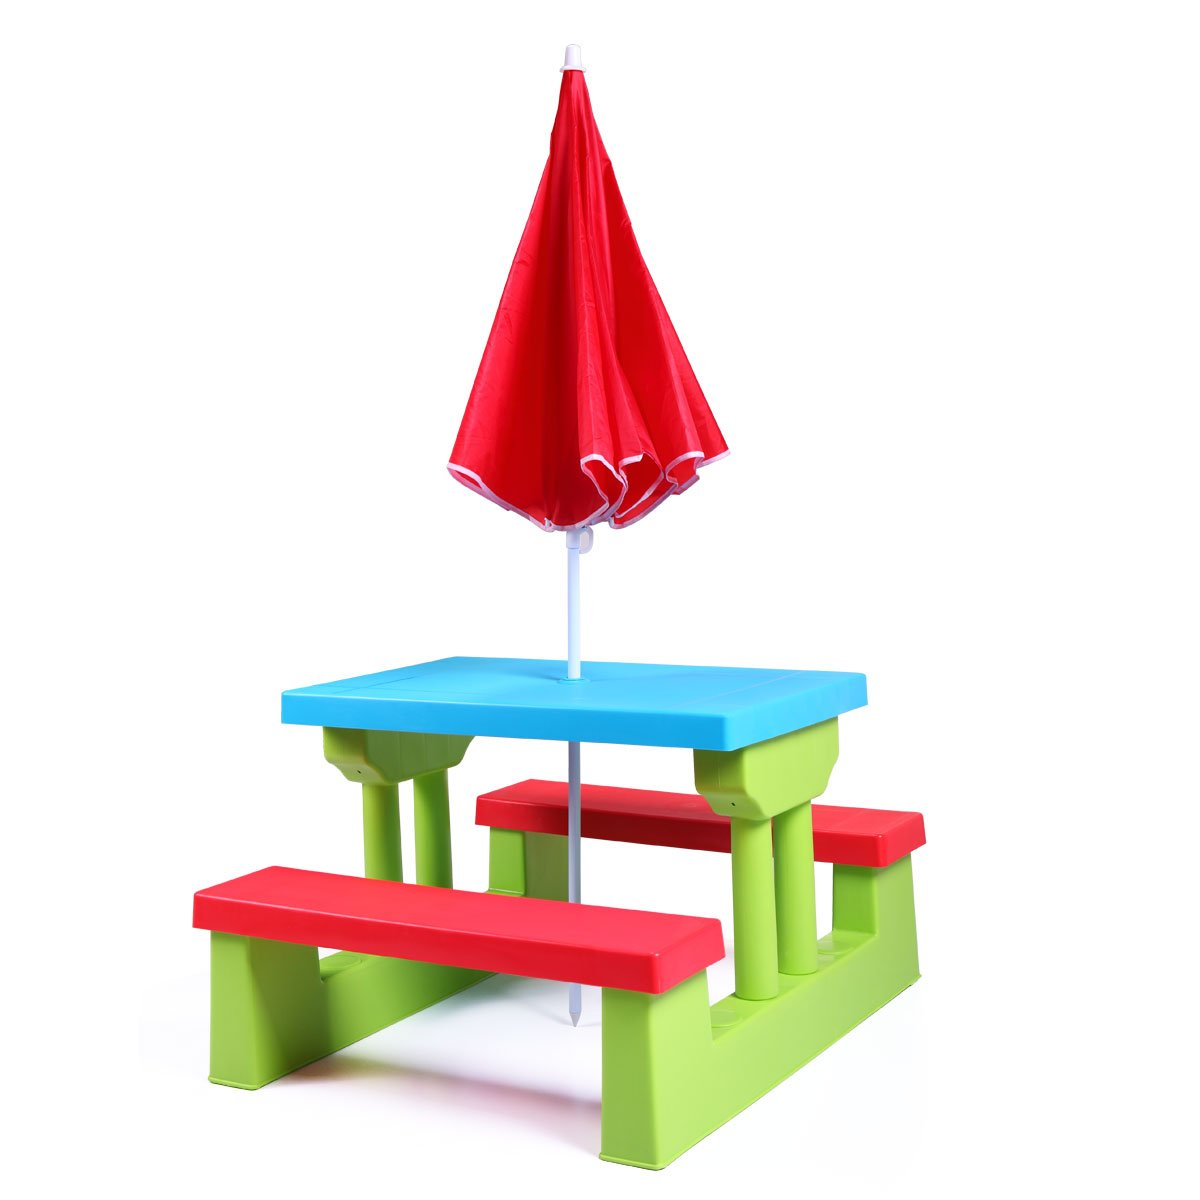 JAXPETY Kids Picnic Table with Umbrella Plastic Folding Outdoor Children Set Play Bench by JAXPETY